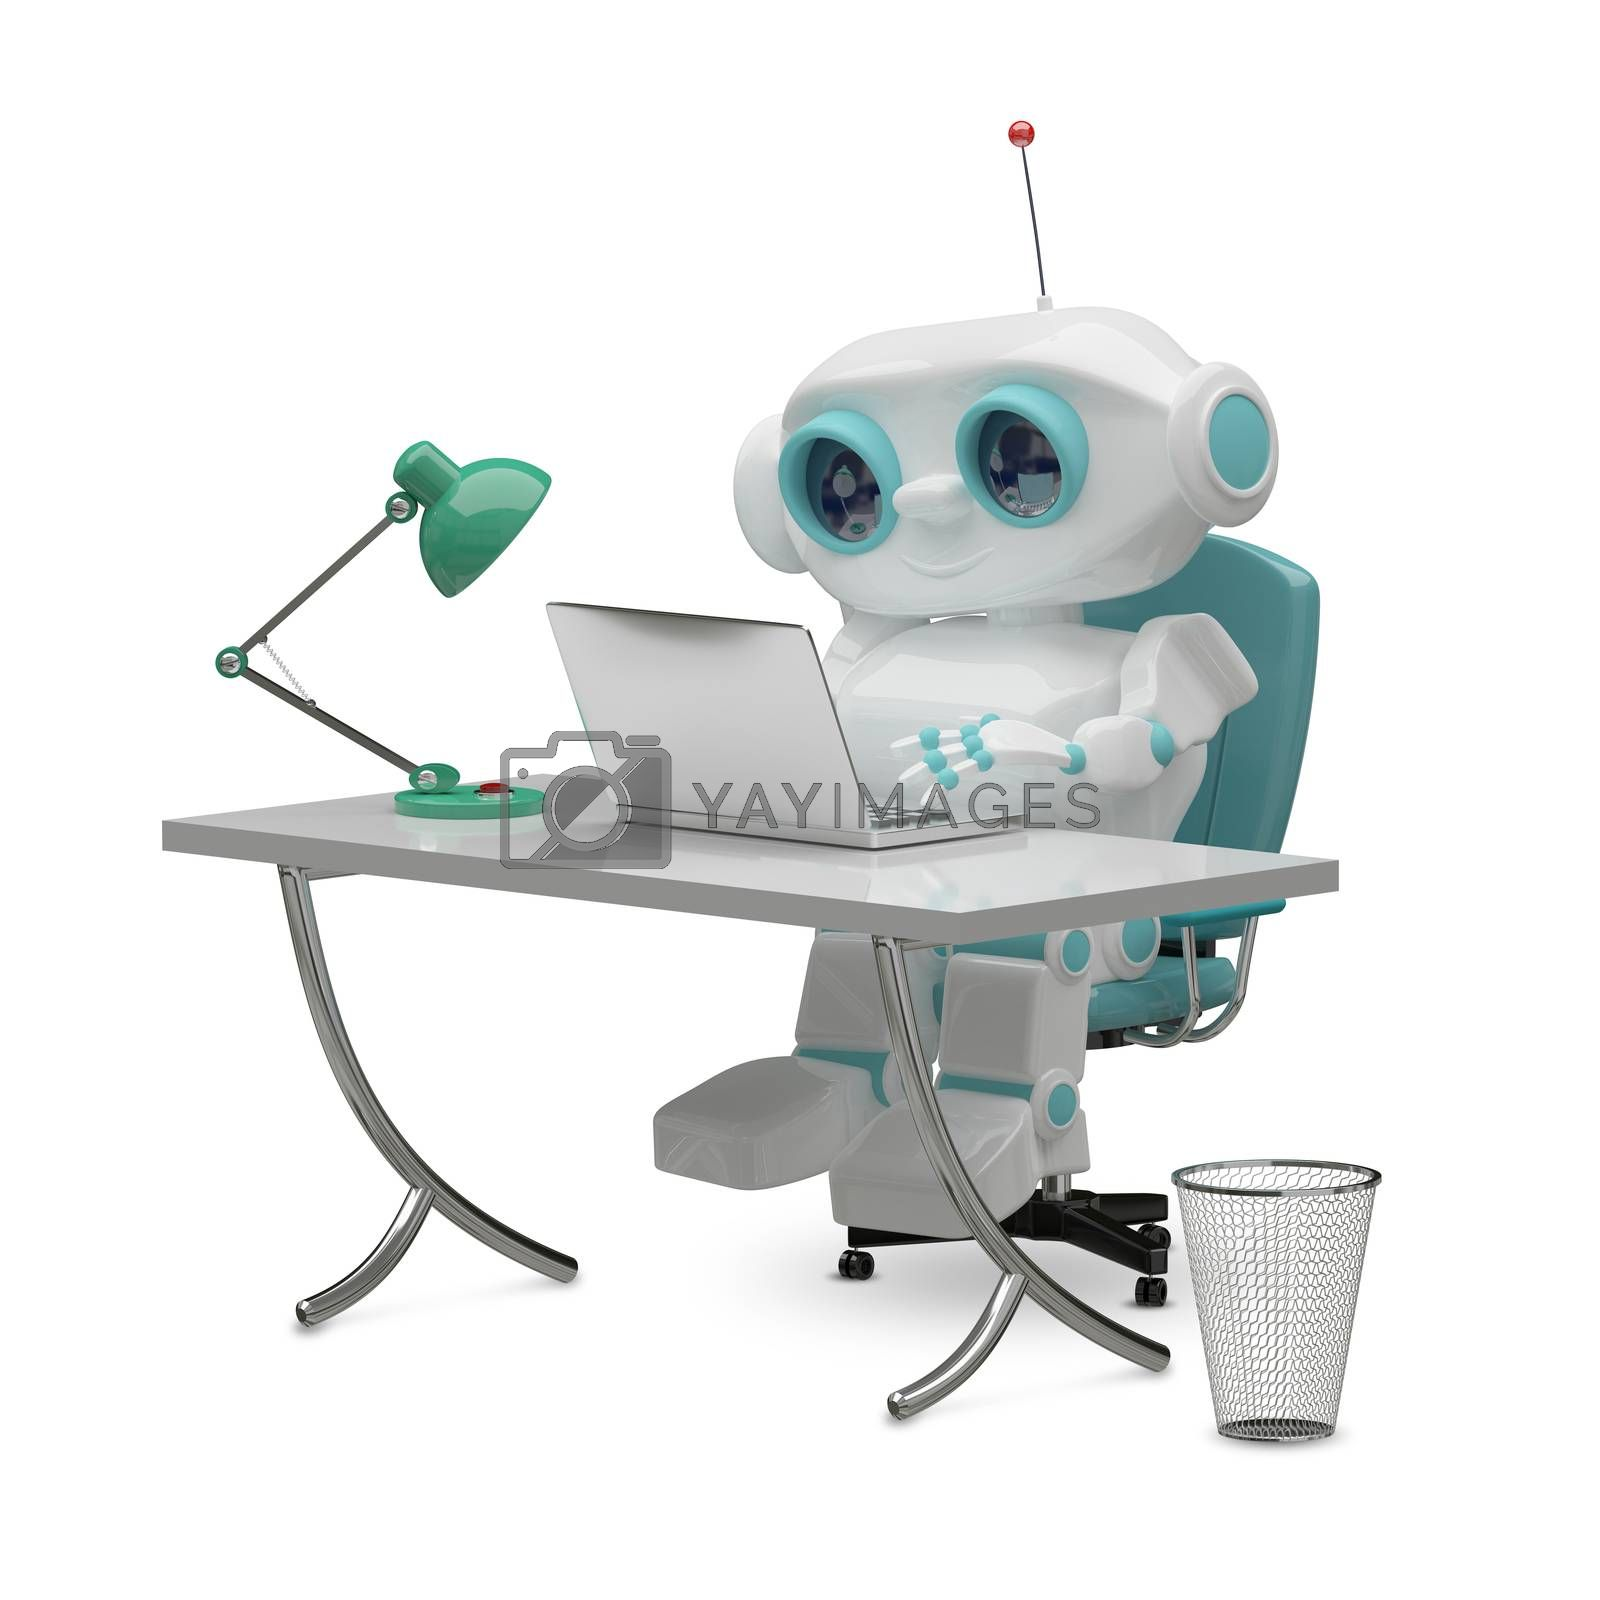 3D Illustration of the Little Robot Behind the Table on White Background